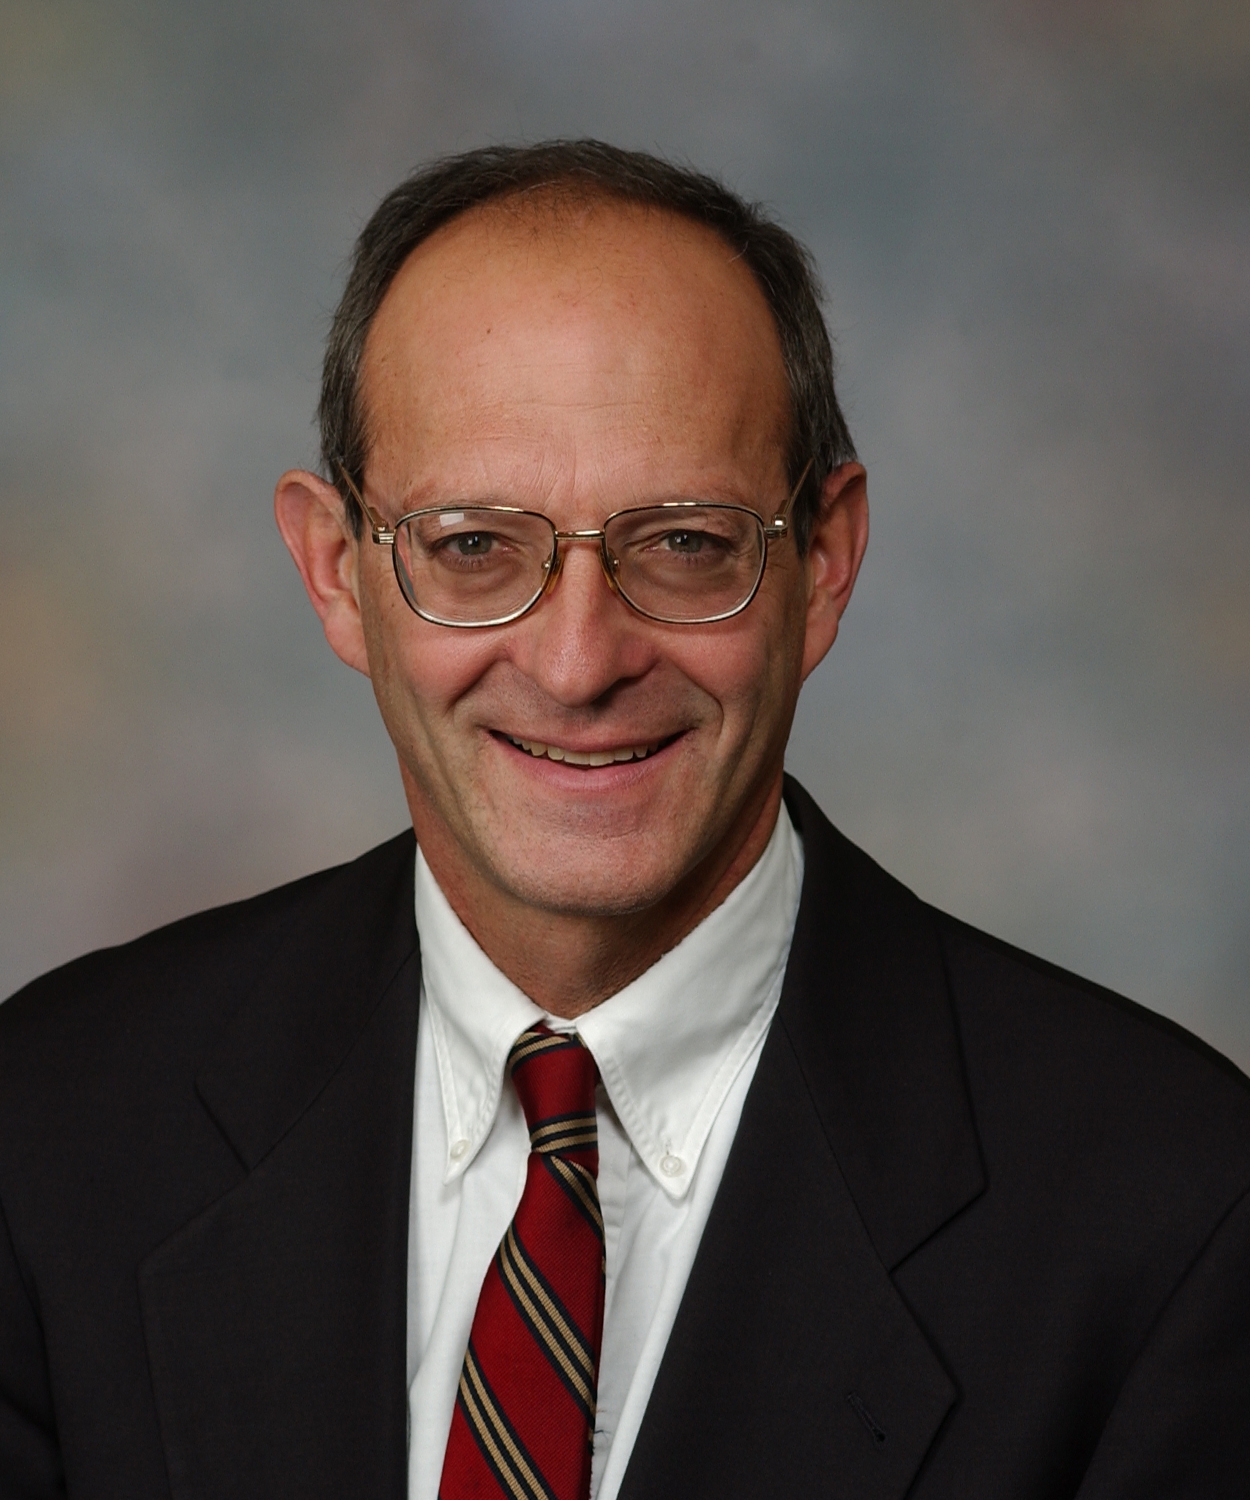 David Knopman, M.D. joined the Department of Neurology at the Mayo Clinic Rochester Minnesota in 2000, where he is currently Professor of Neurology, Mayo Clinic College of Medicine, a Consultant in Neurology at the Mayo Clinic, and a co-investigator in the Mayo Alzheimer's Disease Research Center.